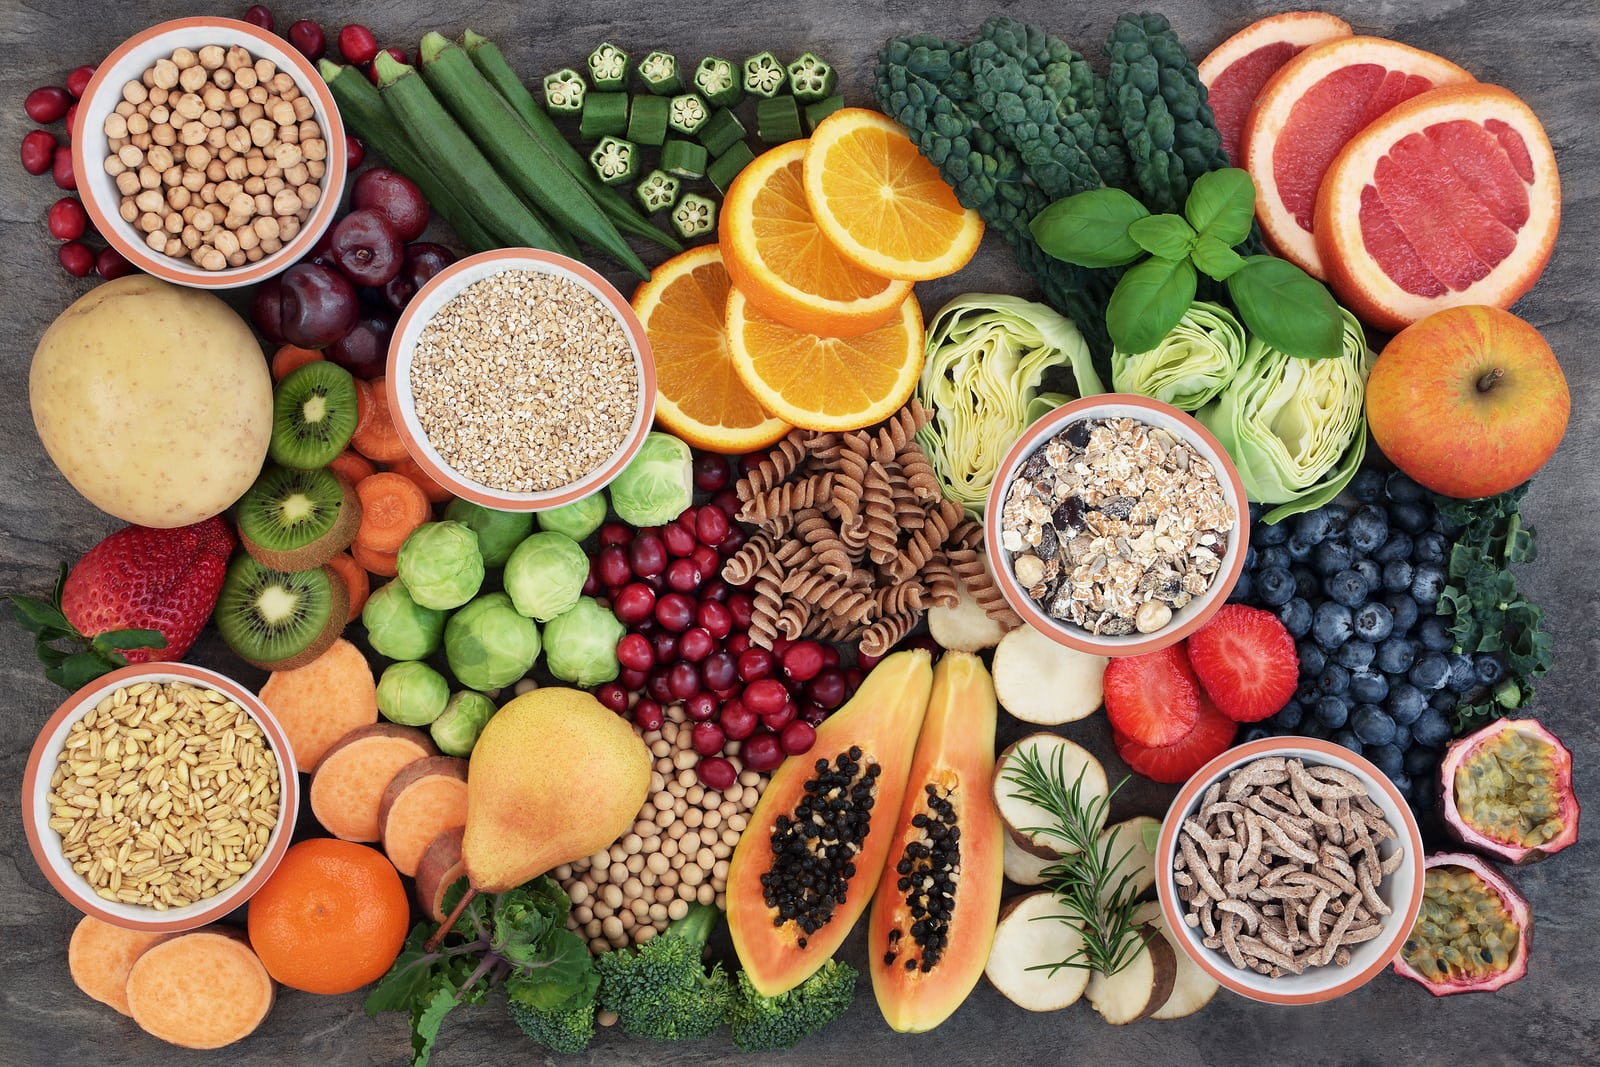 Healthy food options to improve diet